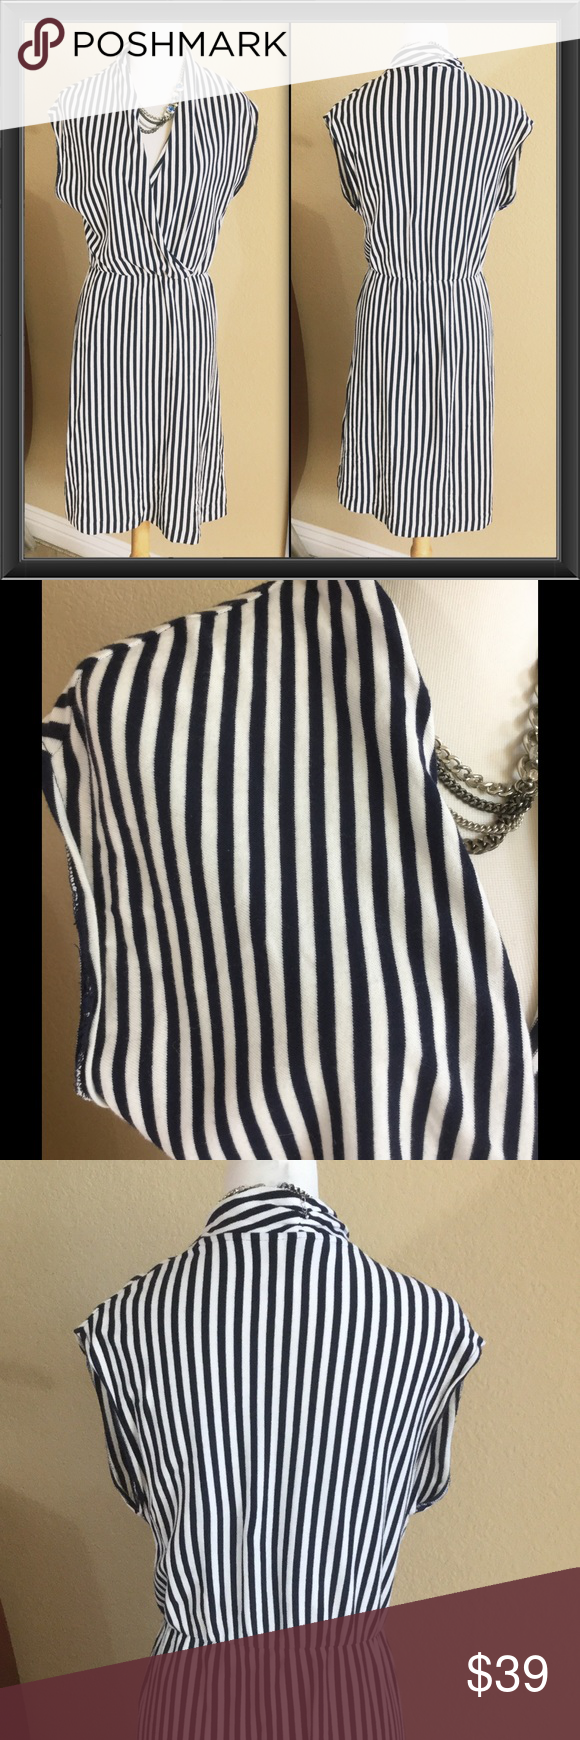 "Anthropologie Navy/White stripe cotton dress Saturday Sunday for Anthropologie Navy/White stripe cotton dress. Very soft wrap front dress with elastic waist band. Would look great with a belt which then could be worn shorter if desired. Wonderful condition. Measures 42.5"" long Aprox 18.5"" across bust and 14"" at waist but have lots more room because of the elastic. Anthropologie Dresses"